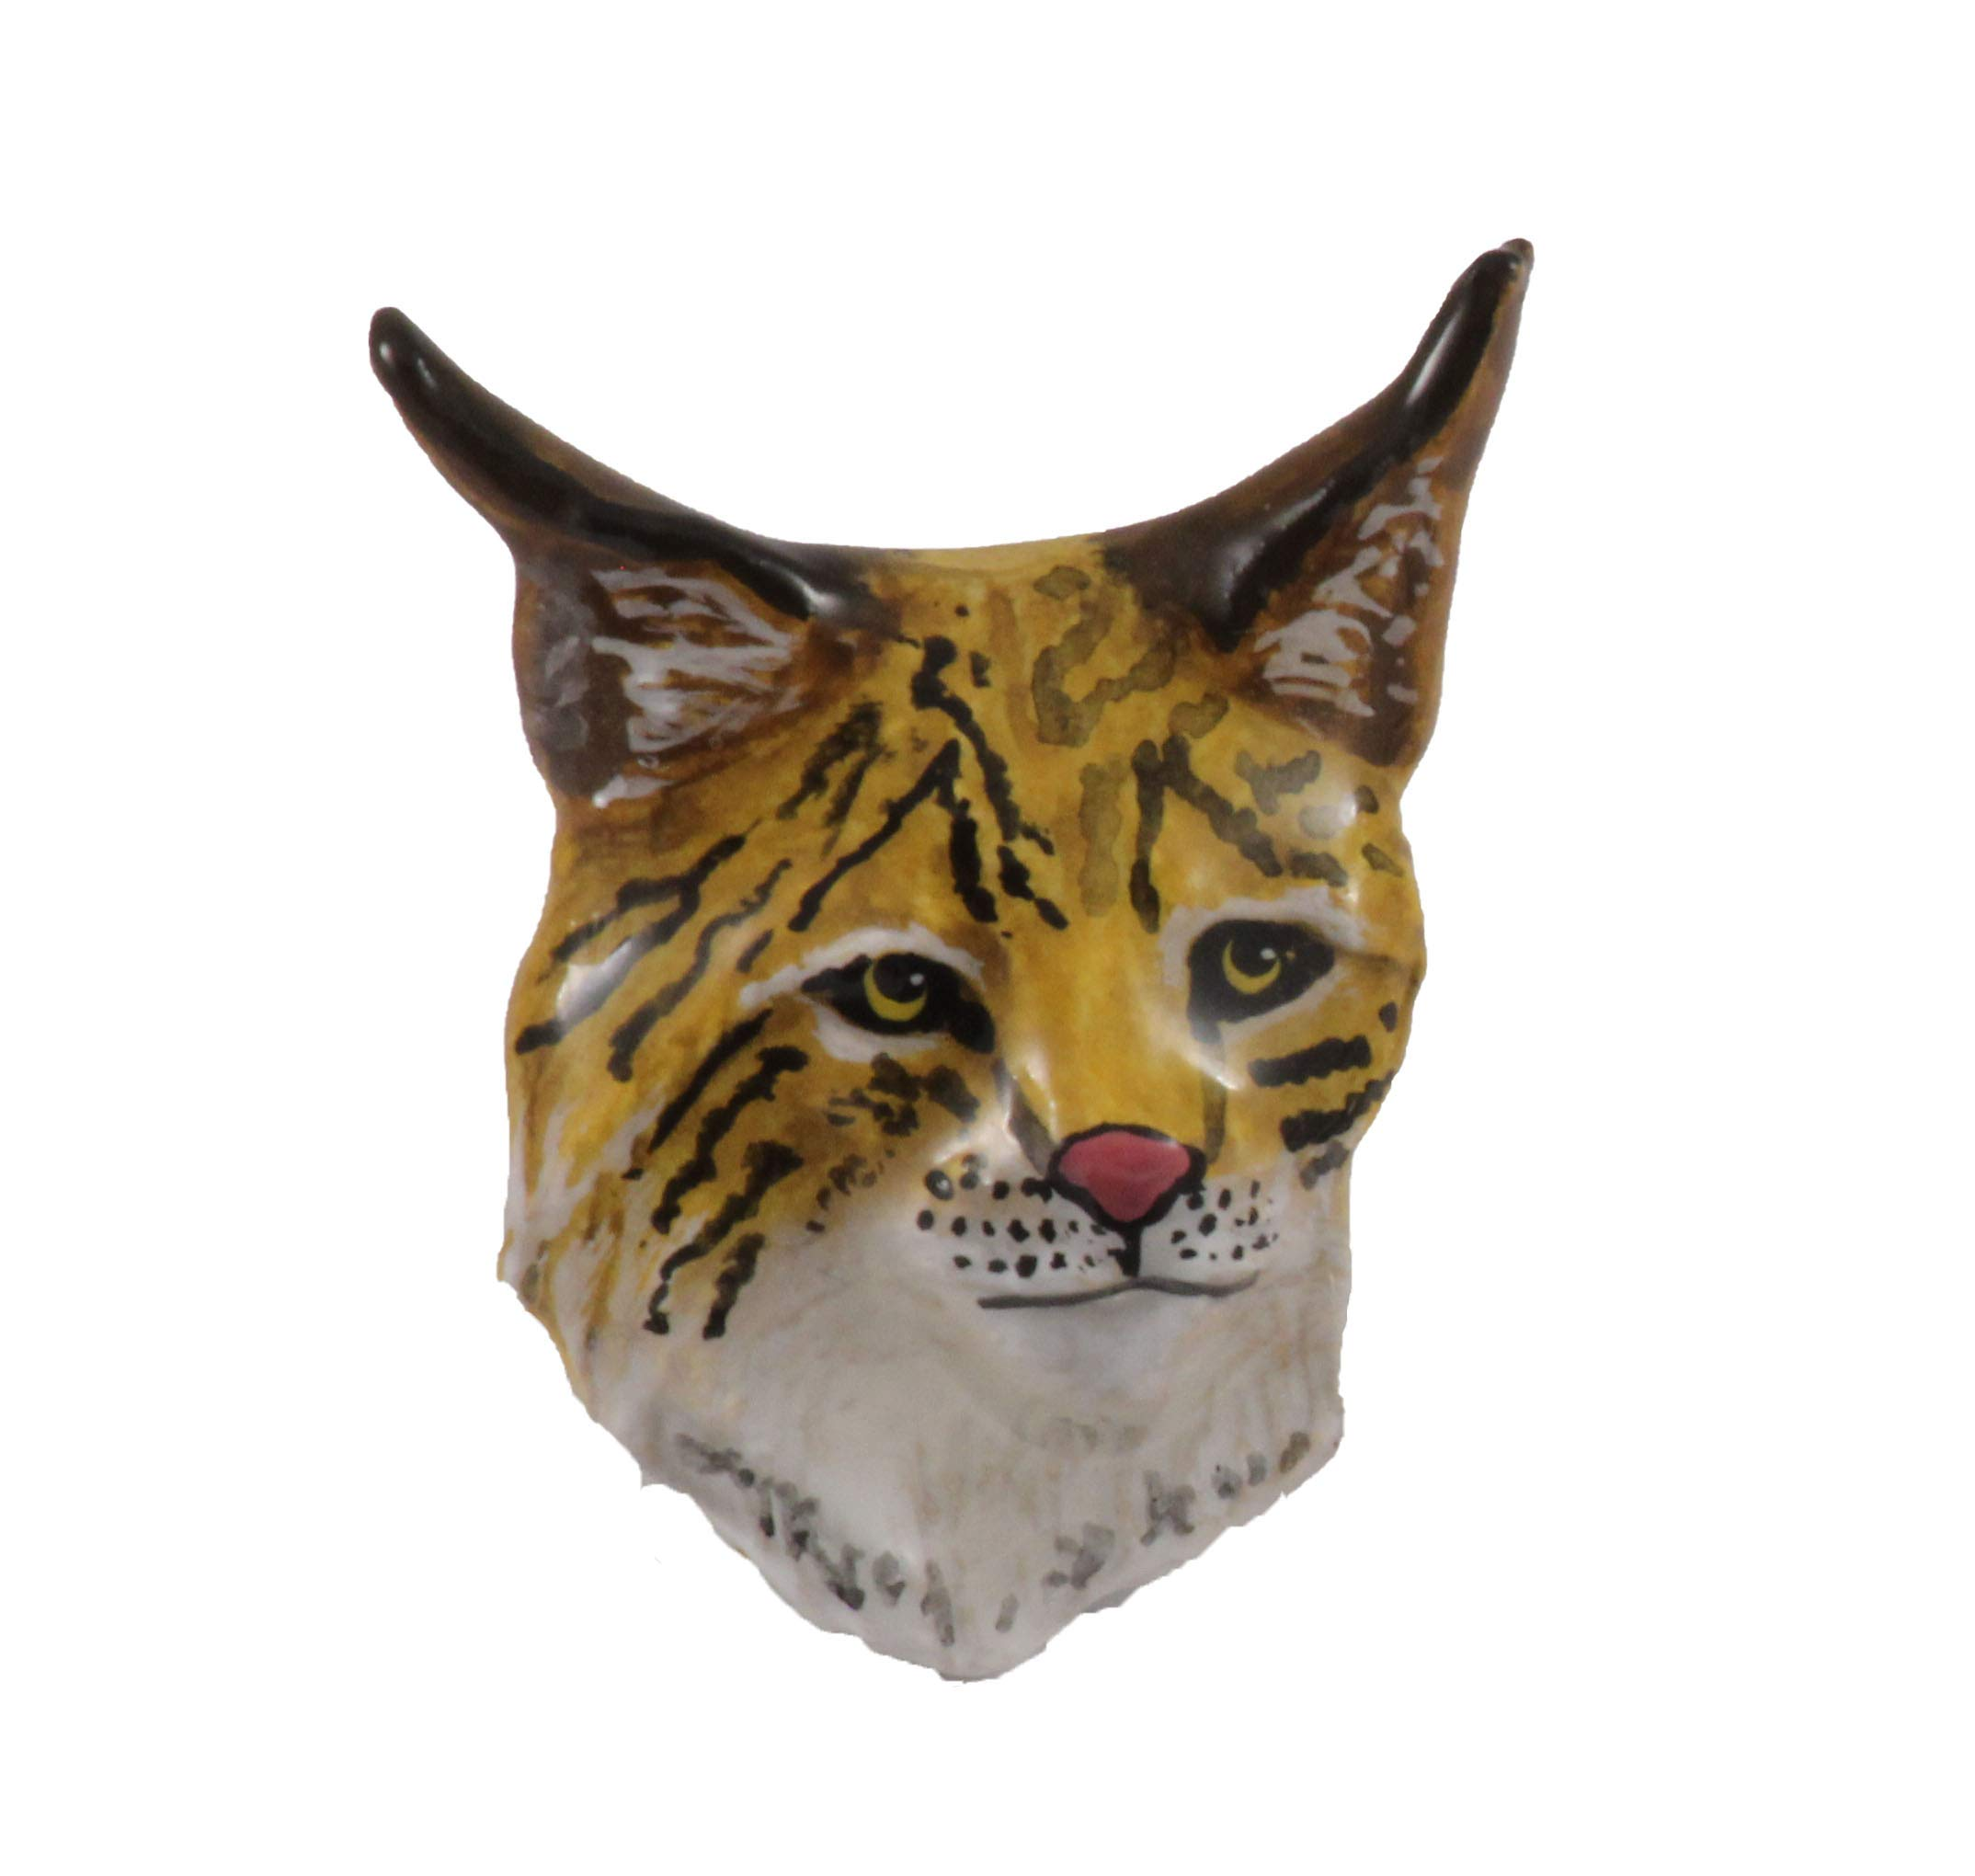 Creative Pewter Designs Lynx Head Mammal Hand Painted Lapel Pin, Brooch, Jewelry, MP050